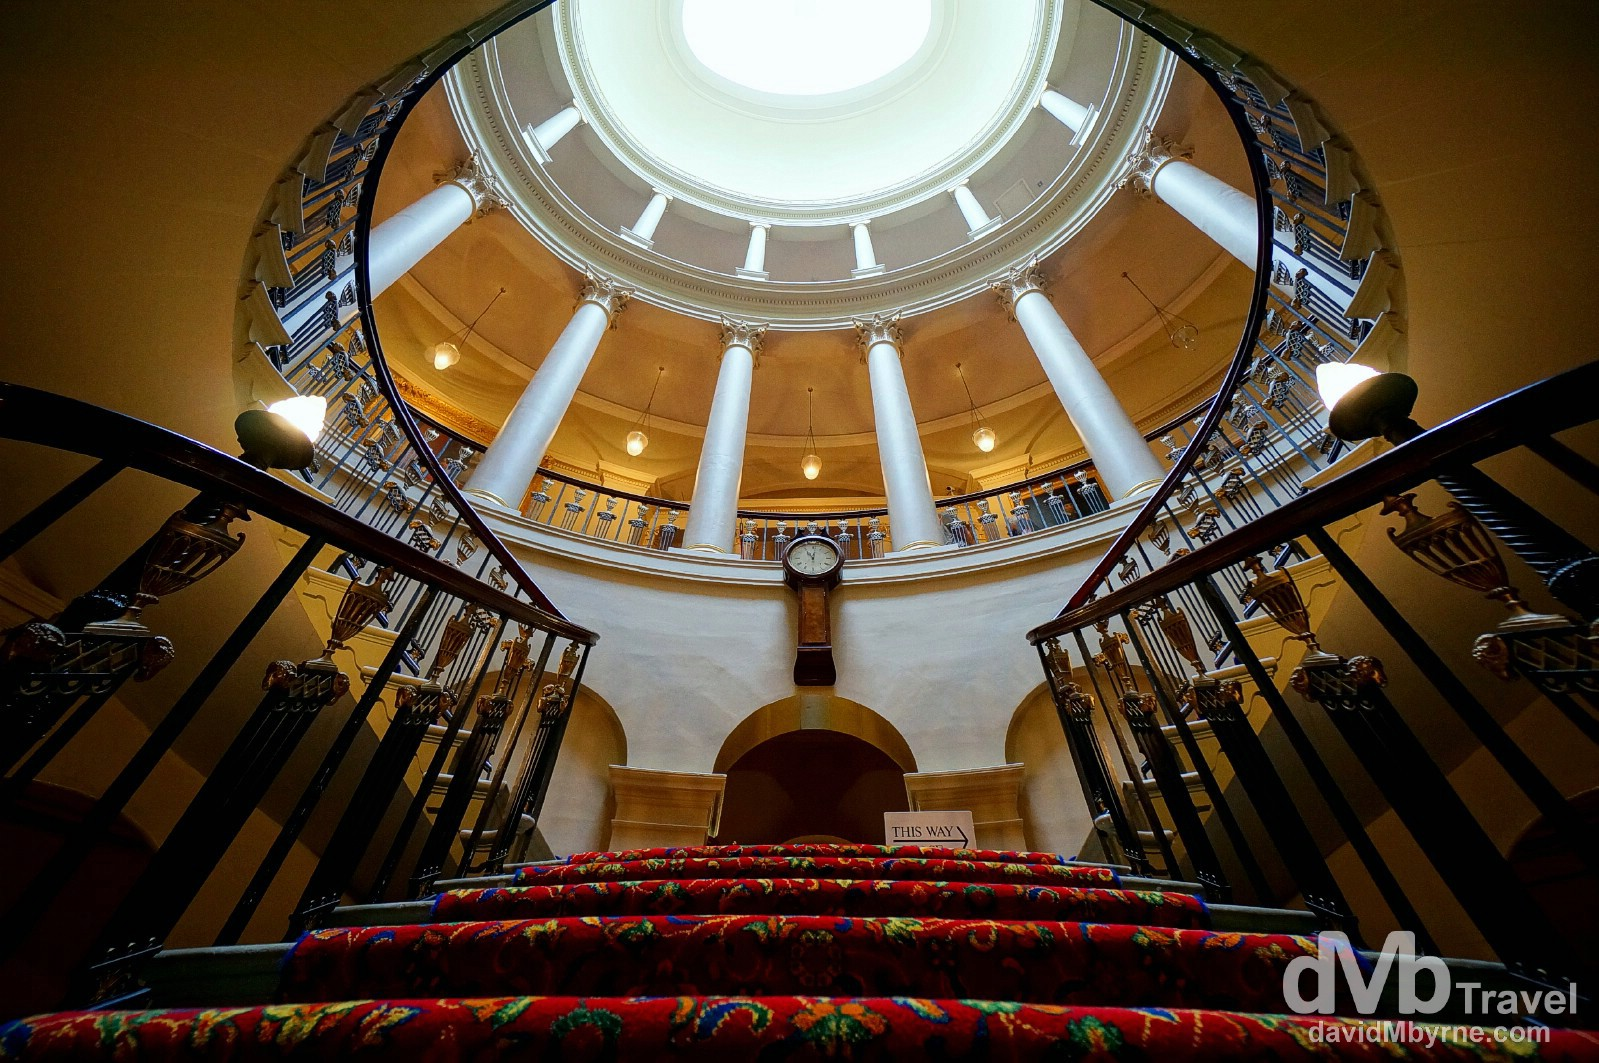 The amazing Oval Staircase of Culzean Castle, Ayrshire, Scotland. September 19, 2014.